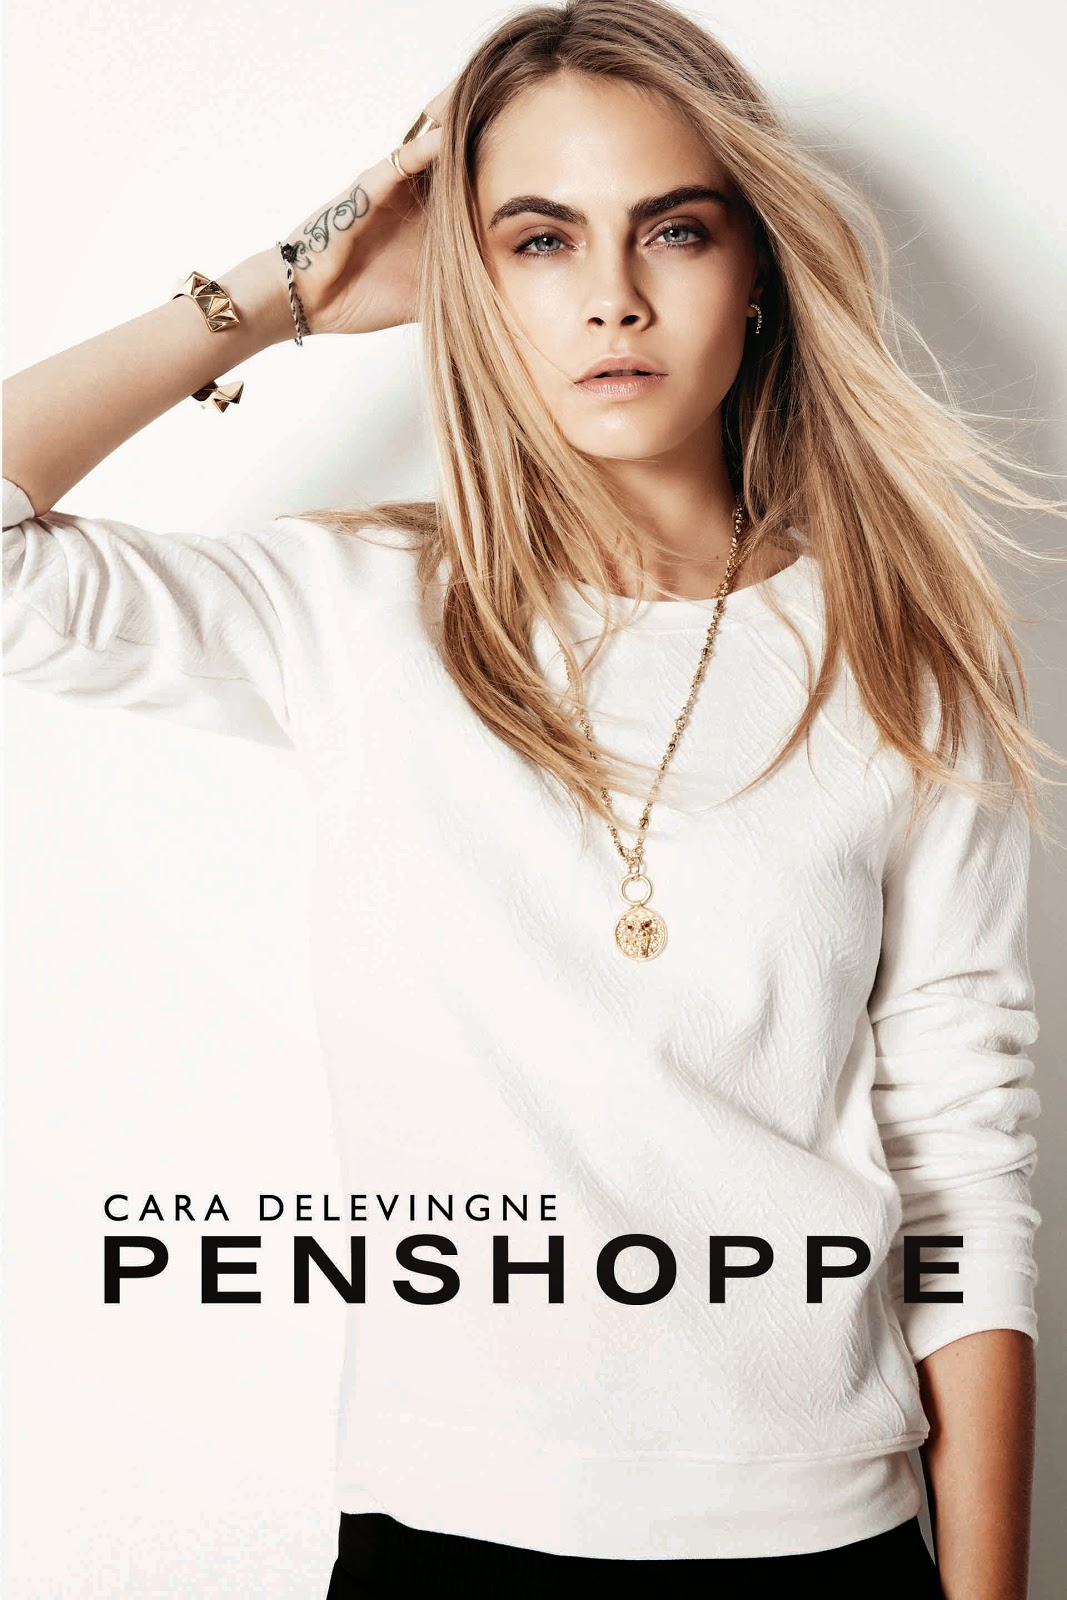 Penshoppe Who Recently Named British Supermodel And It Girl Cara Delevingne As The Face Of Their Latest Holiday Campaign Will Showcase A Large Array